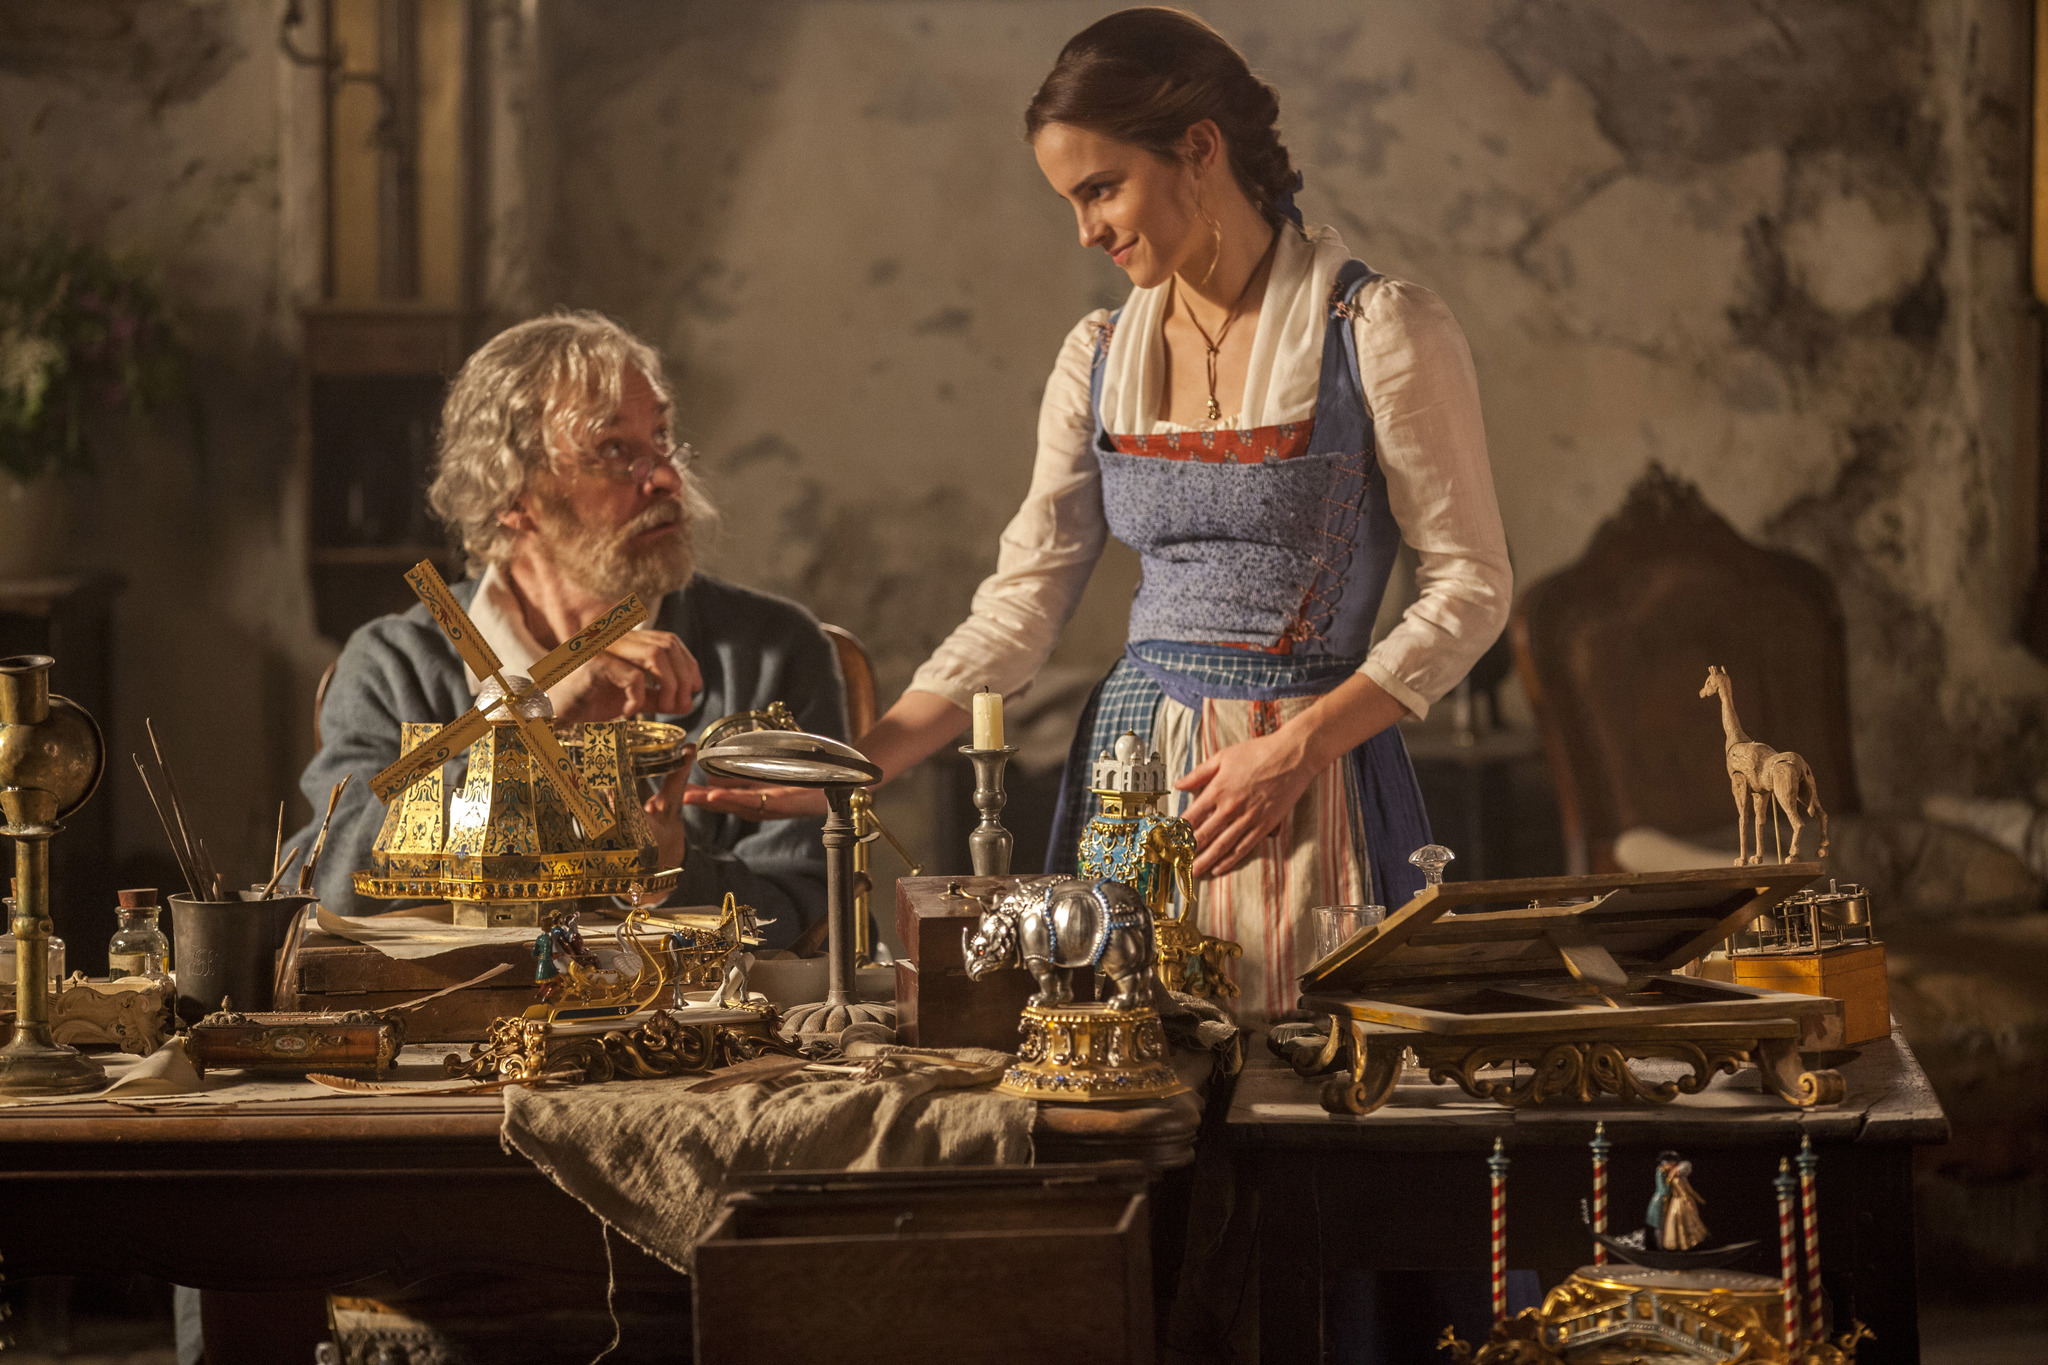 Kevin Kline and Emma Watson in Beauty and the Beast (2017)